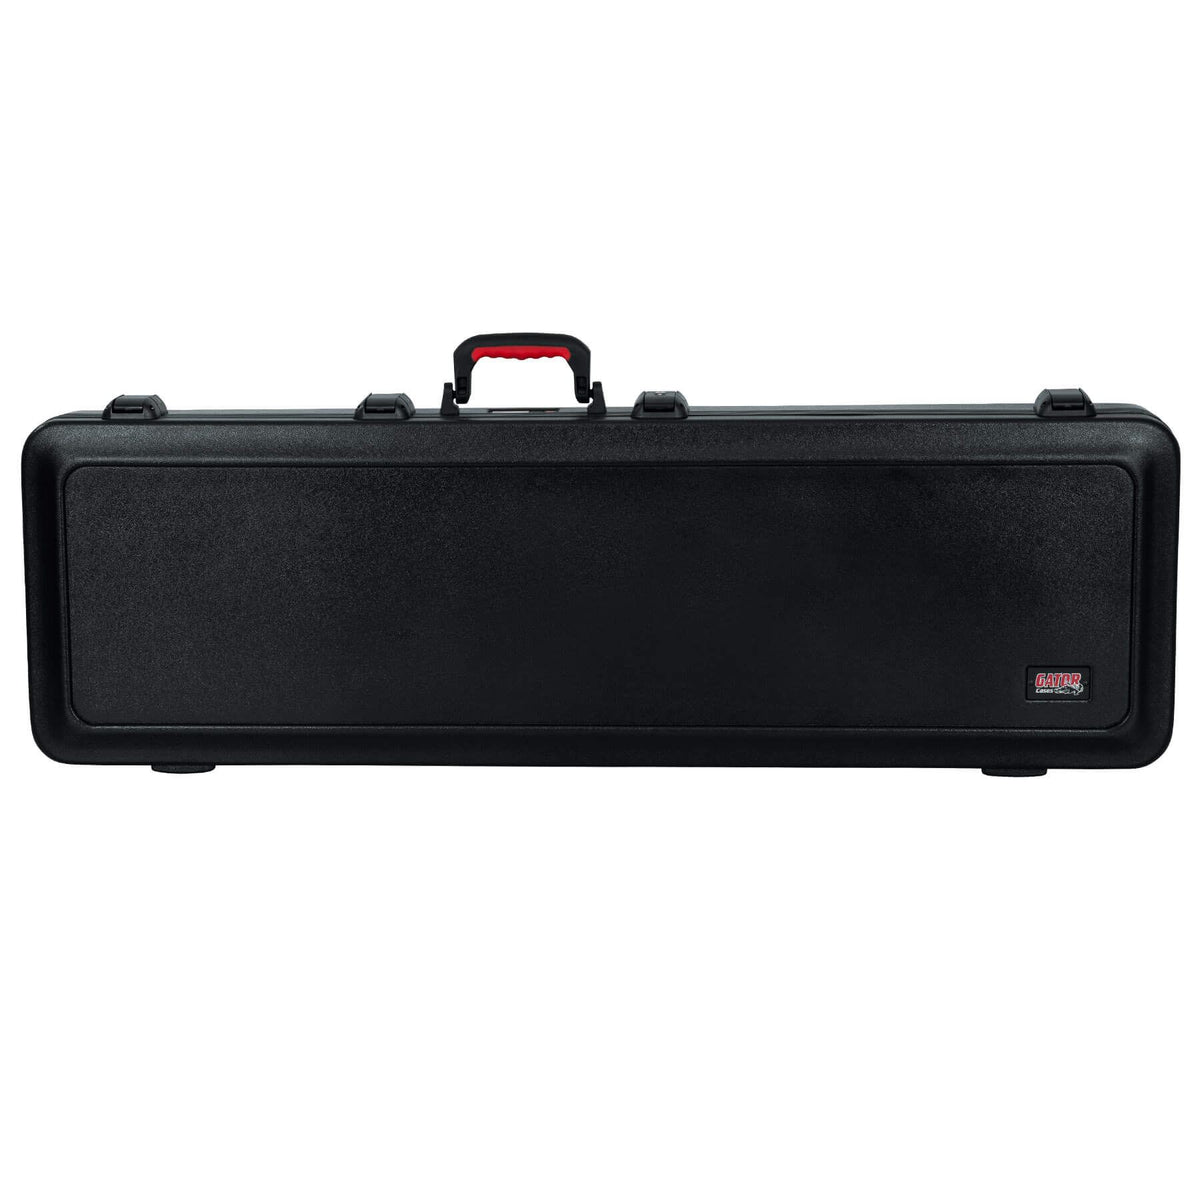 Gator ATA Bass Guitar Case fits Ibanez ATK Series